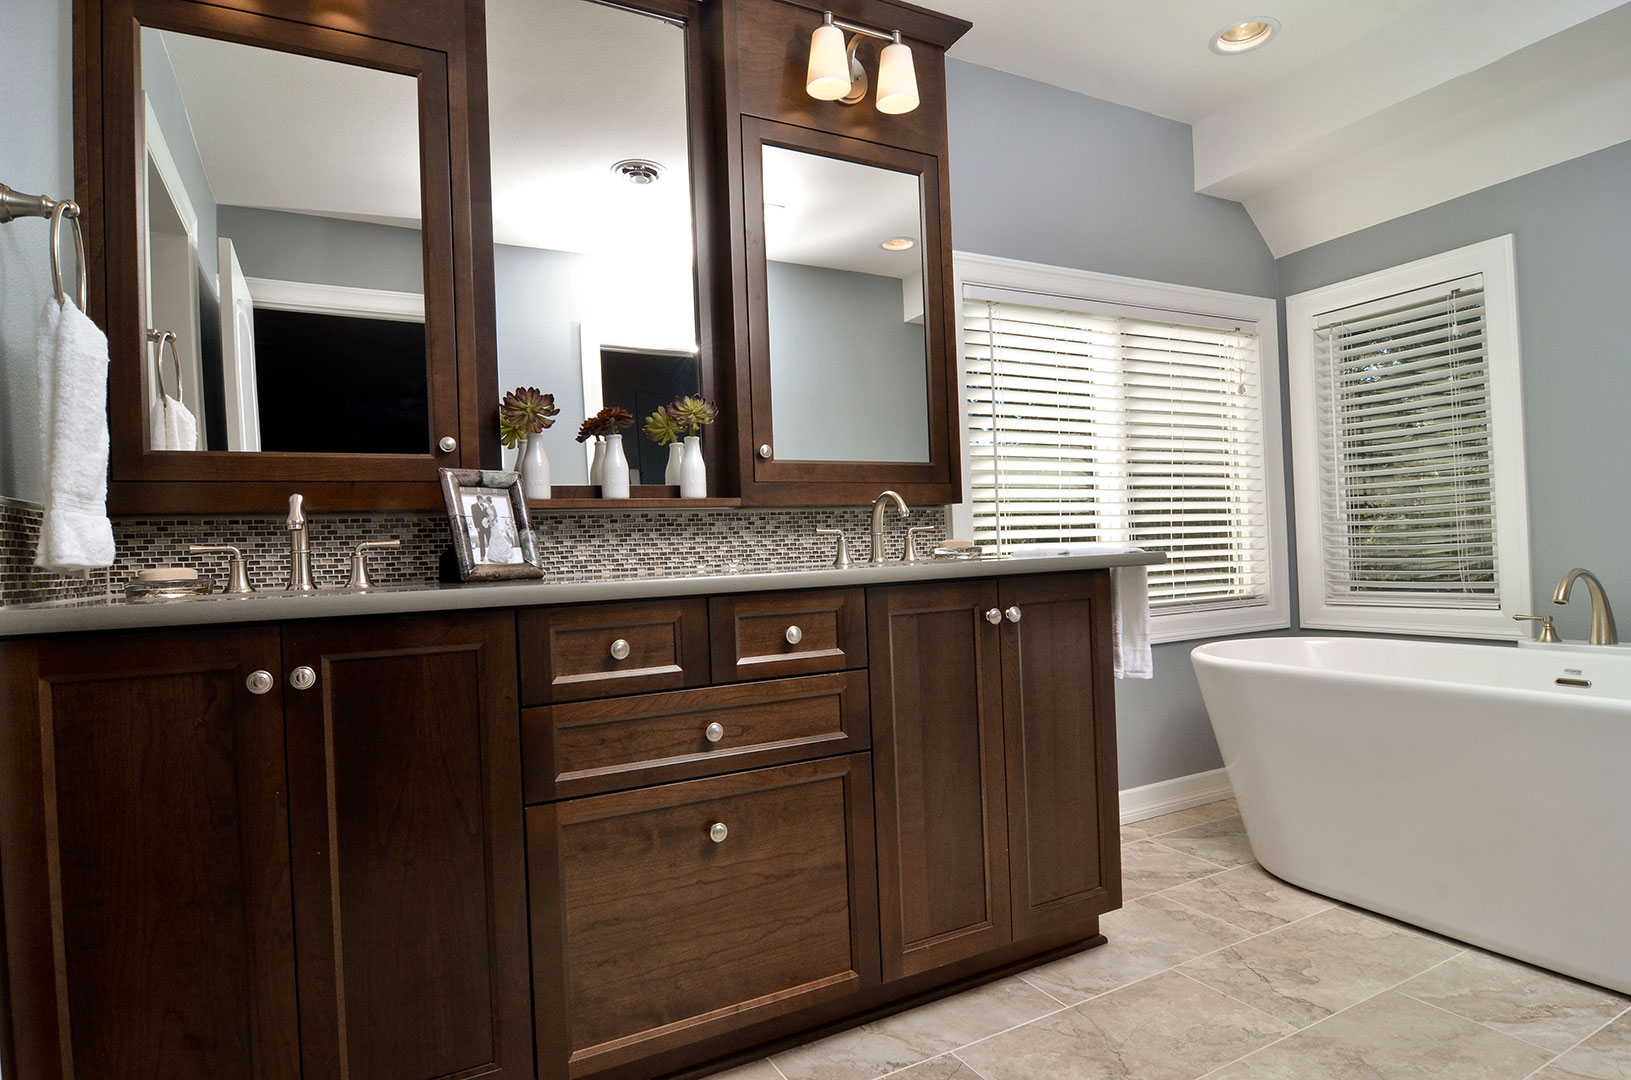 Beaverton-Bath-Remodel-026